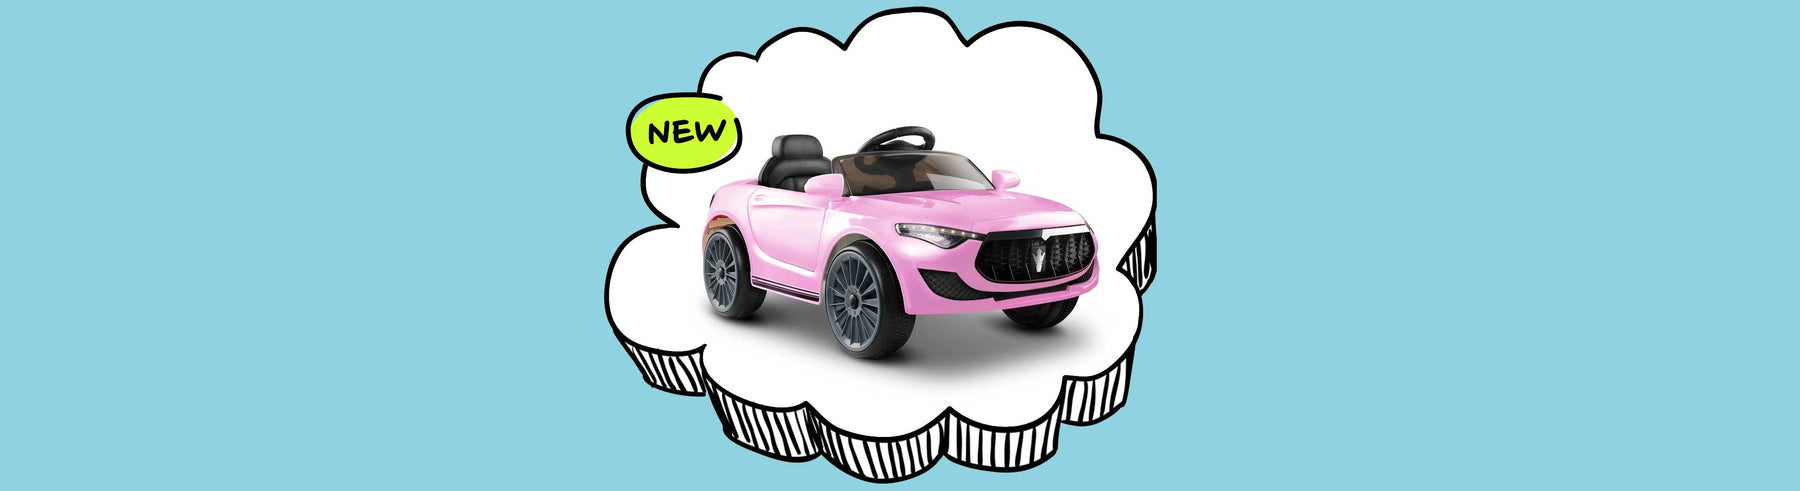 Maserati Inspired Kids Ride On Car_Pink